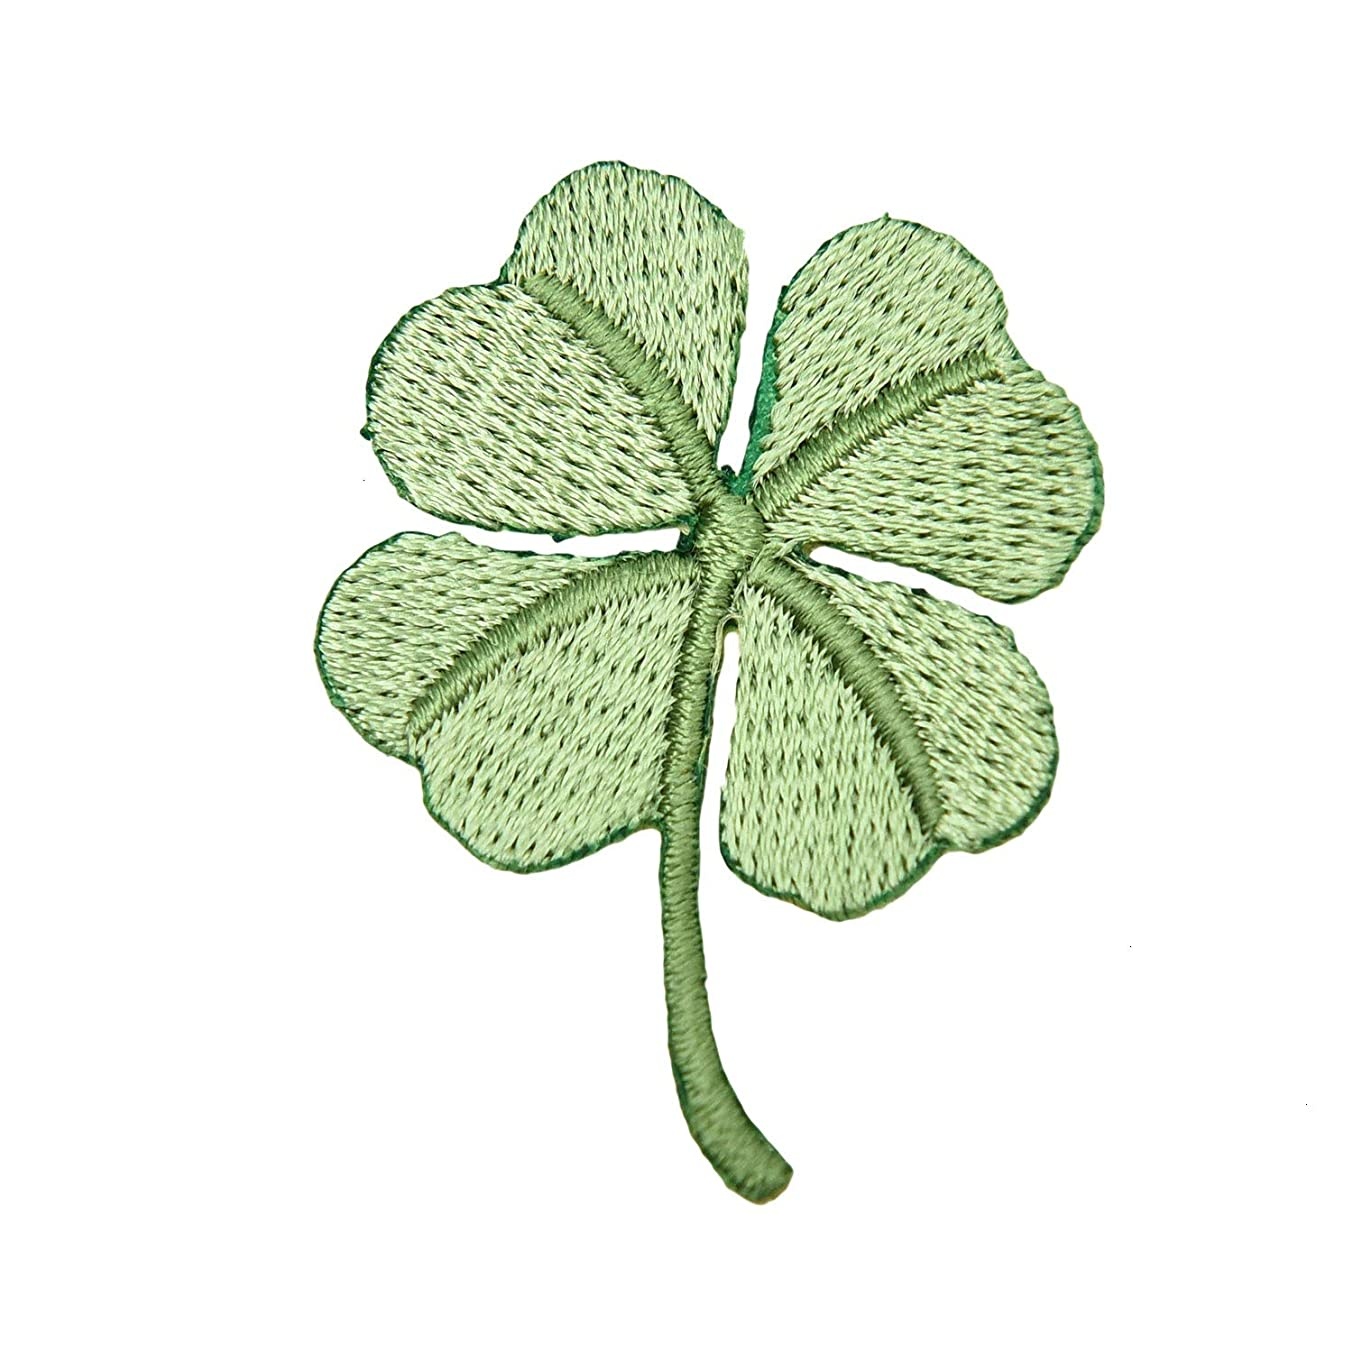 Monrocco 6 pcs Four Leaf Clover Embroidered Patches Lucky Patches Iron On Patches Sew On Applique Patch for Clothes DIY Sewing Accessories